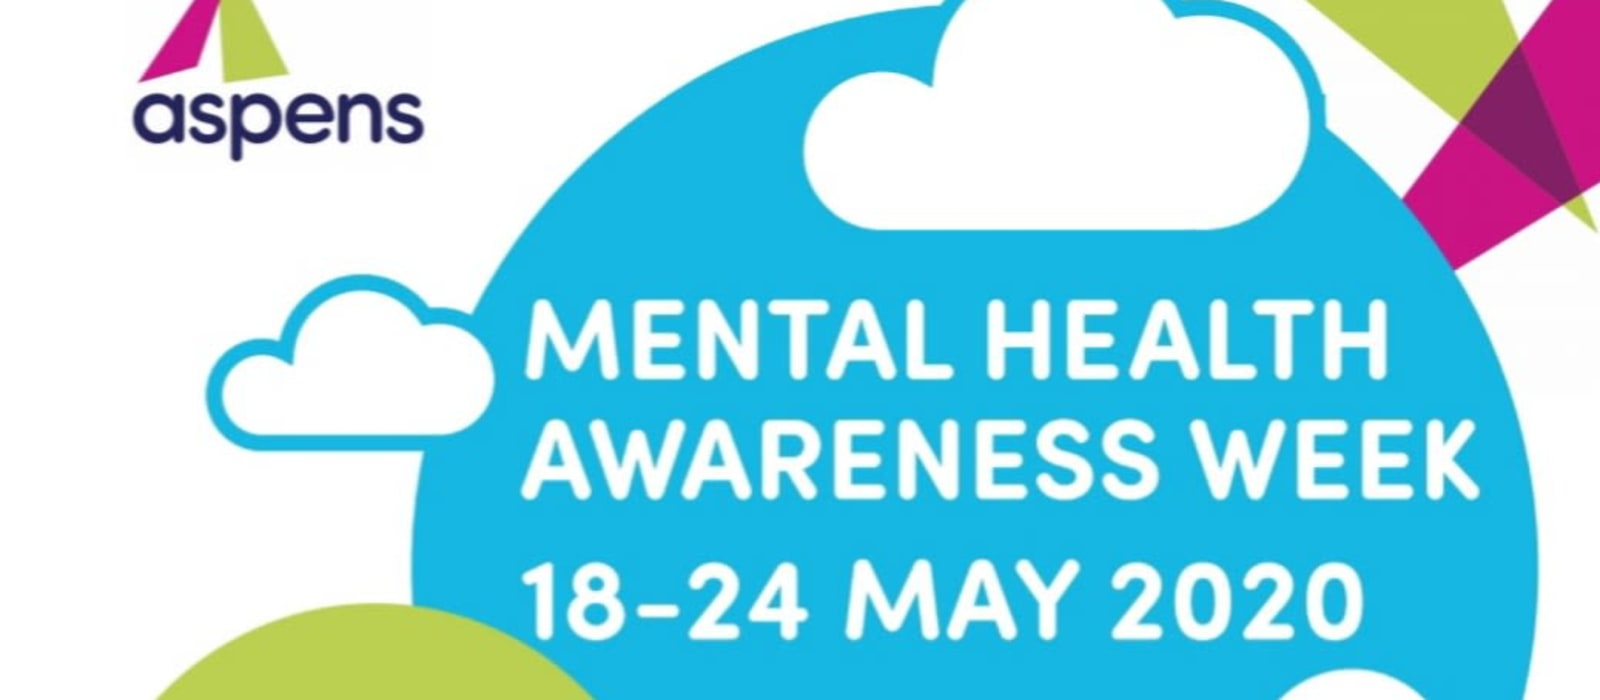 Aspens is proud to celebrate Mental Health Awareness Week